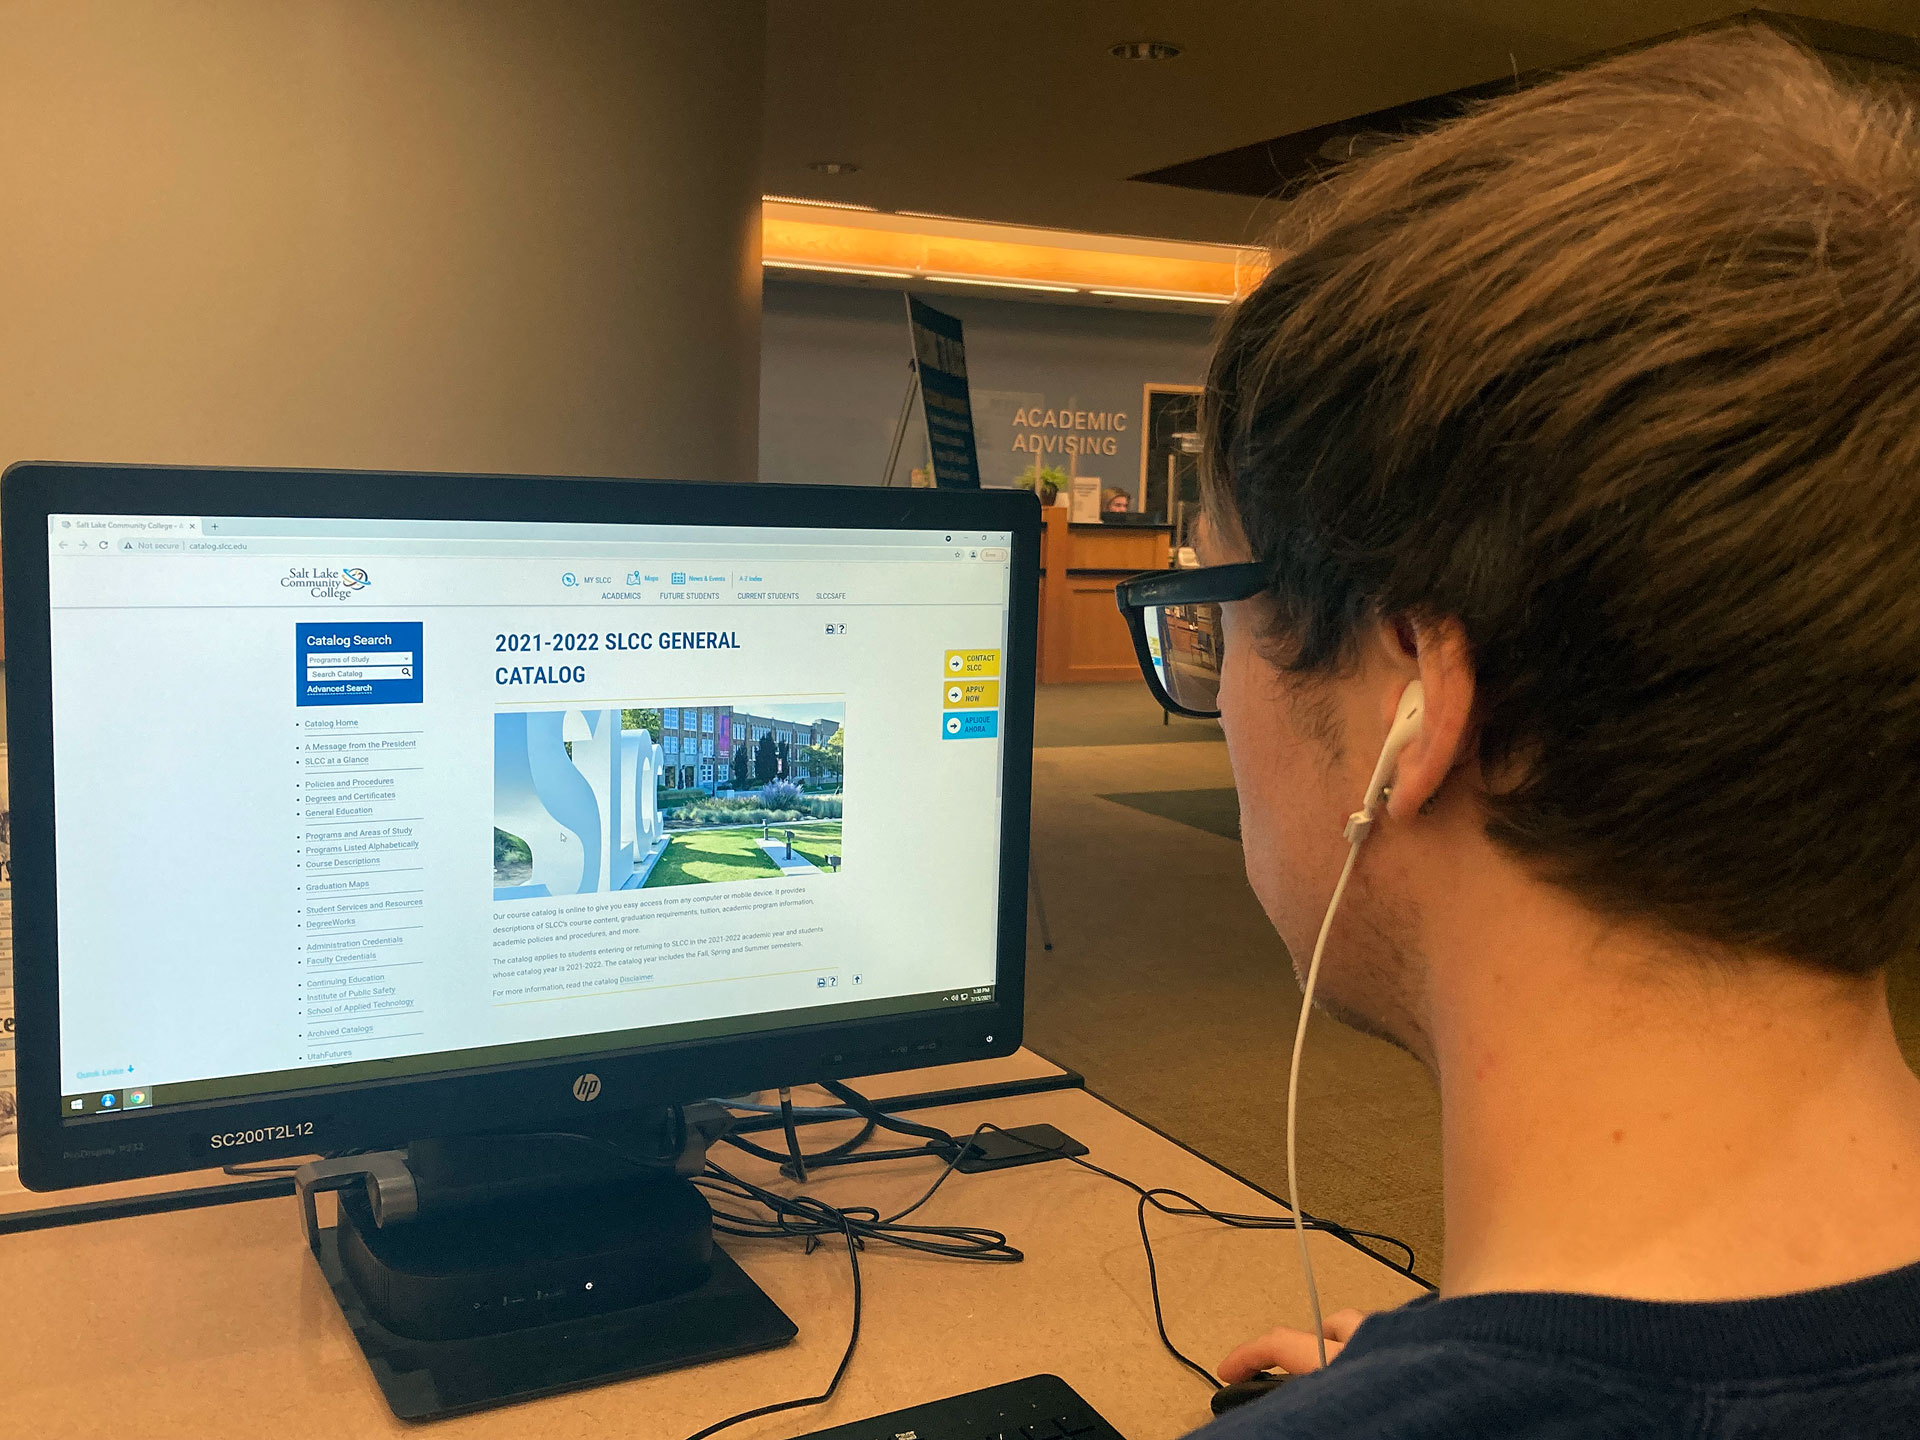 Student browsing the SLCC catalog web page